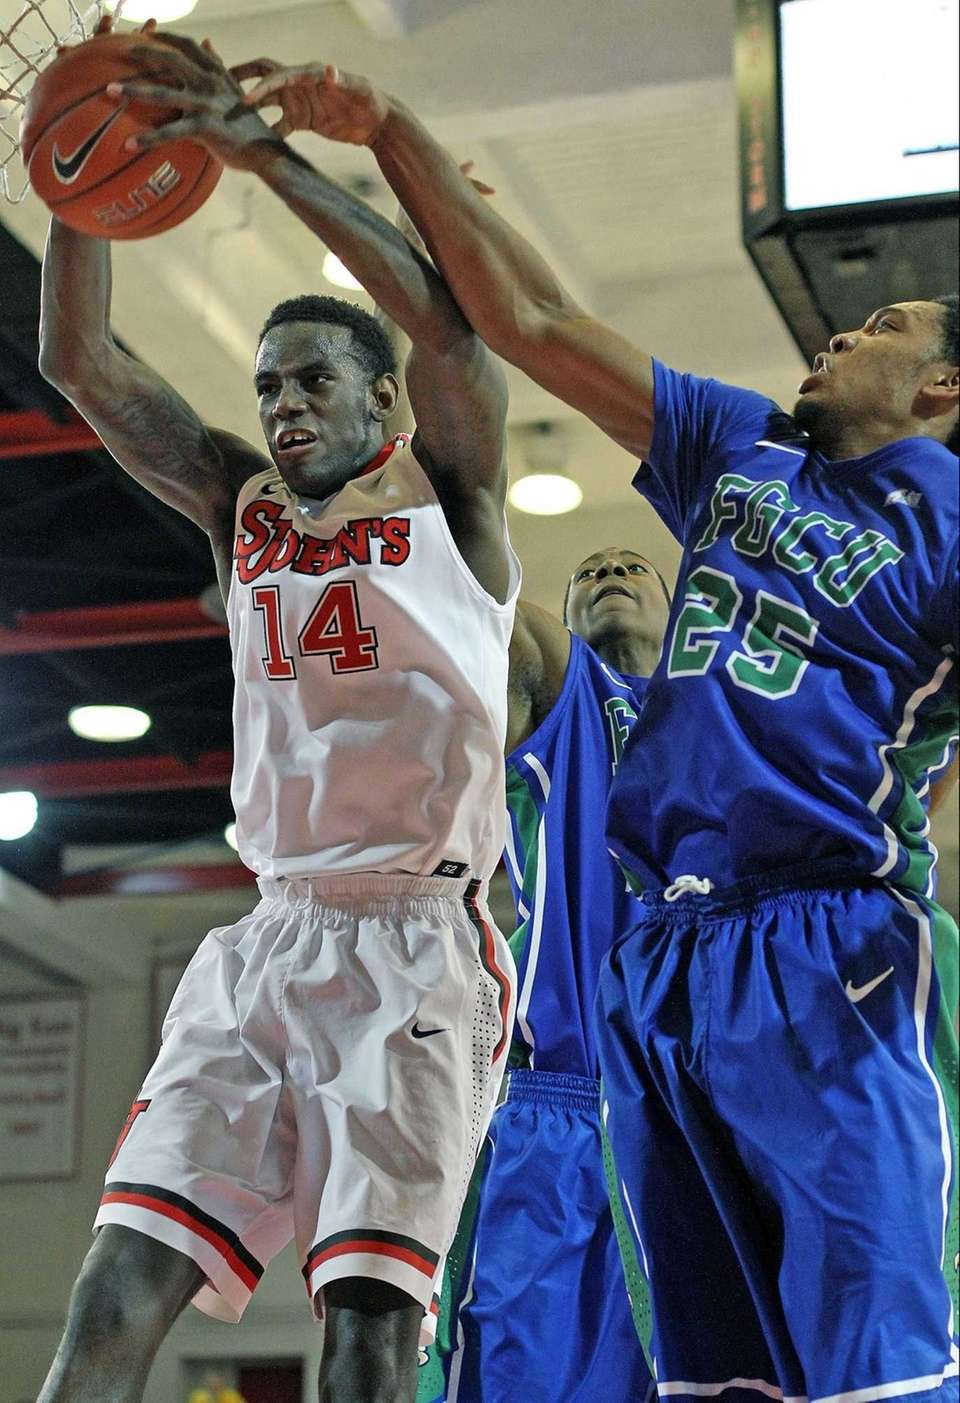 St John's JaKarr Sampson goes for the rebound